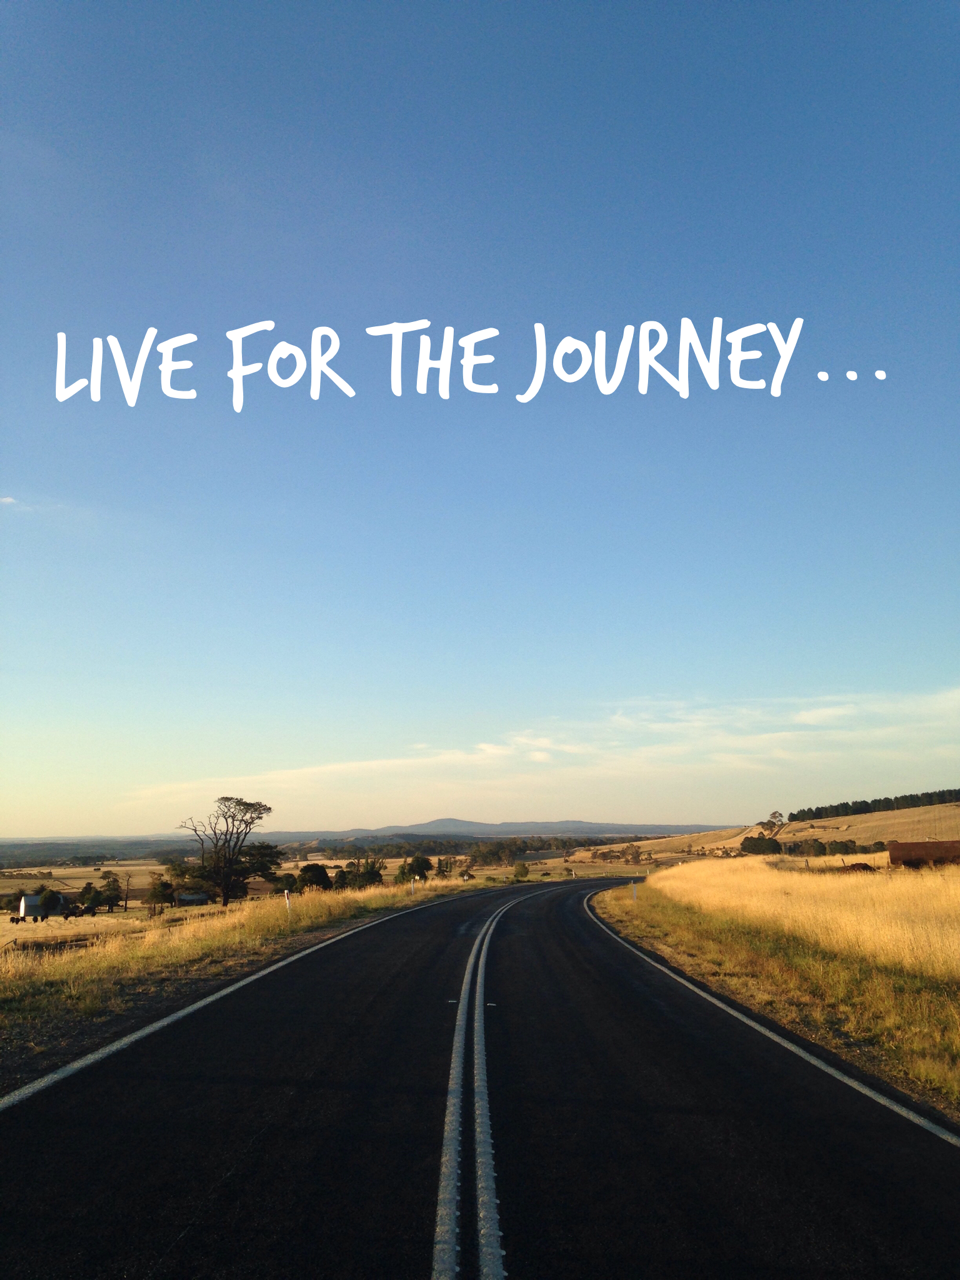 Live for the journey